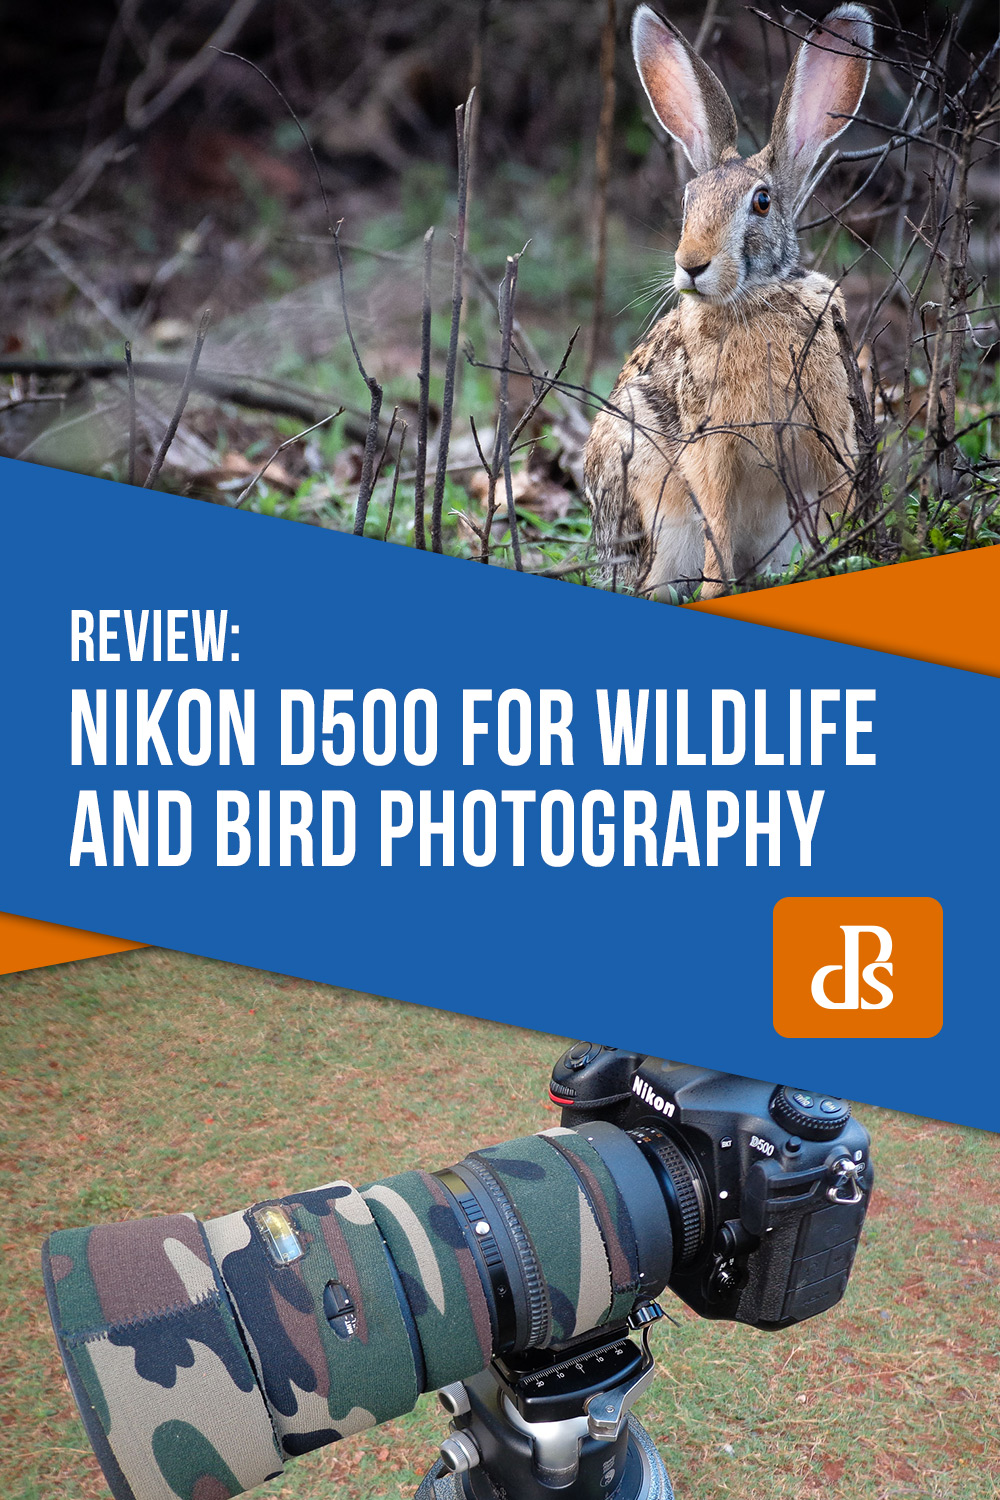 Nikon D500 review for wildlife and bird photography